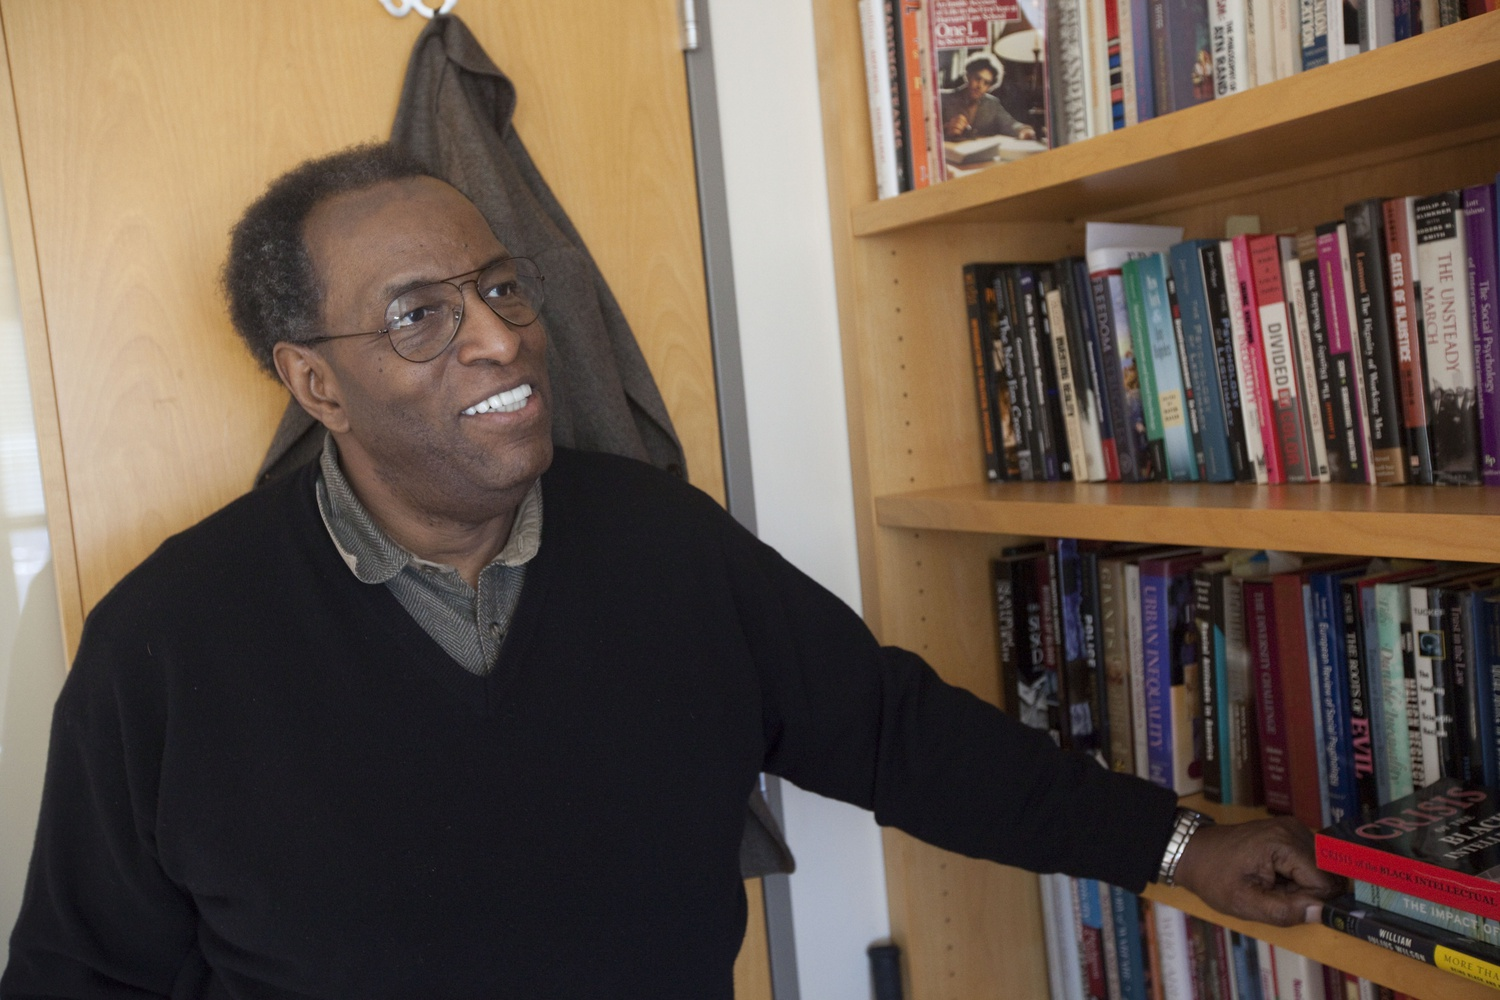 James H. Sidanius began teaching at Harvard in 2006 and ran a lab studying the social psychology of ethno-racial hierarchies, prejudice, and identity.